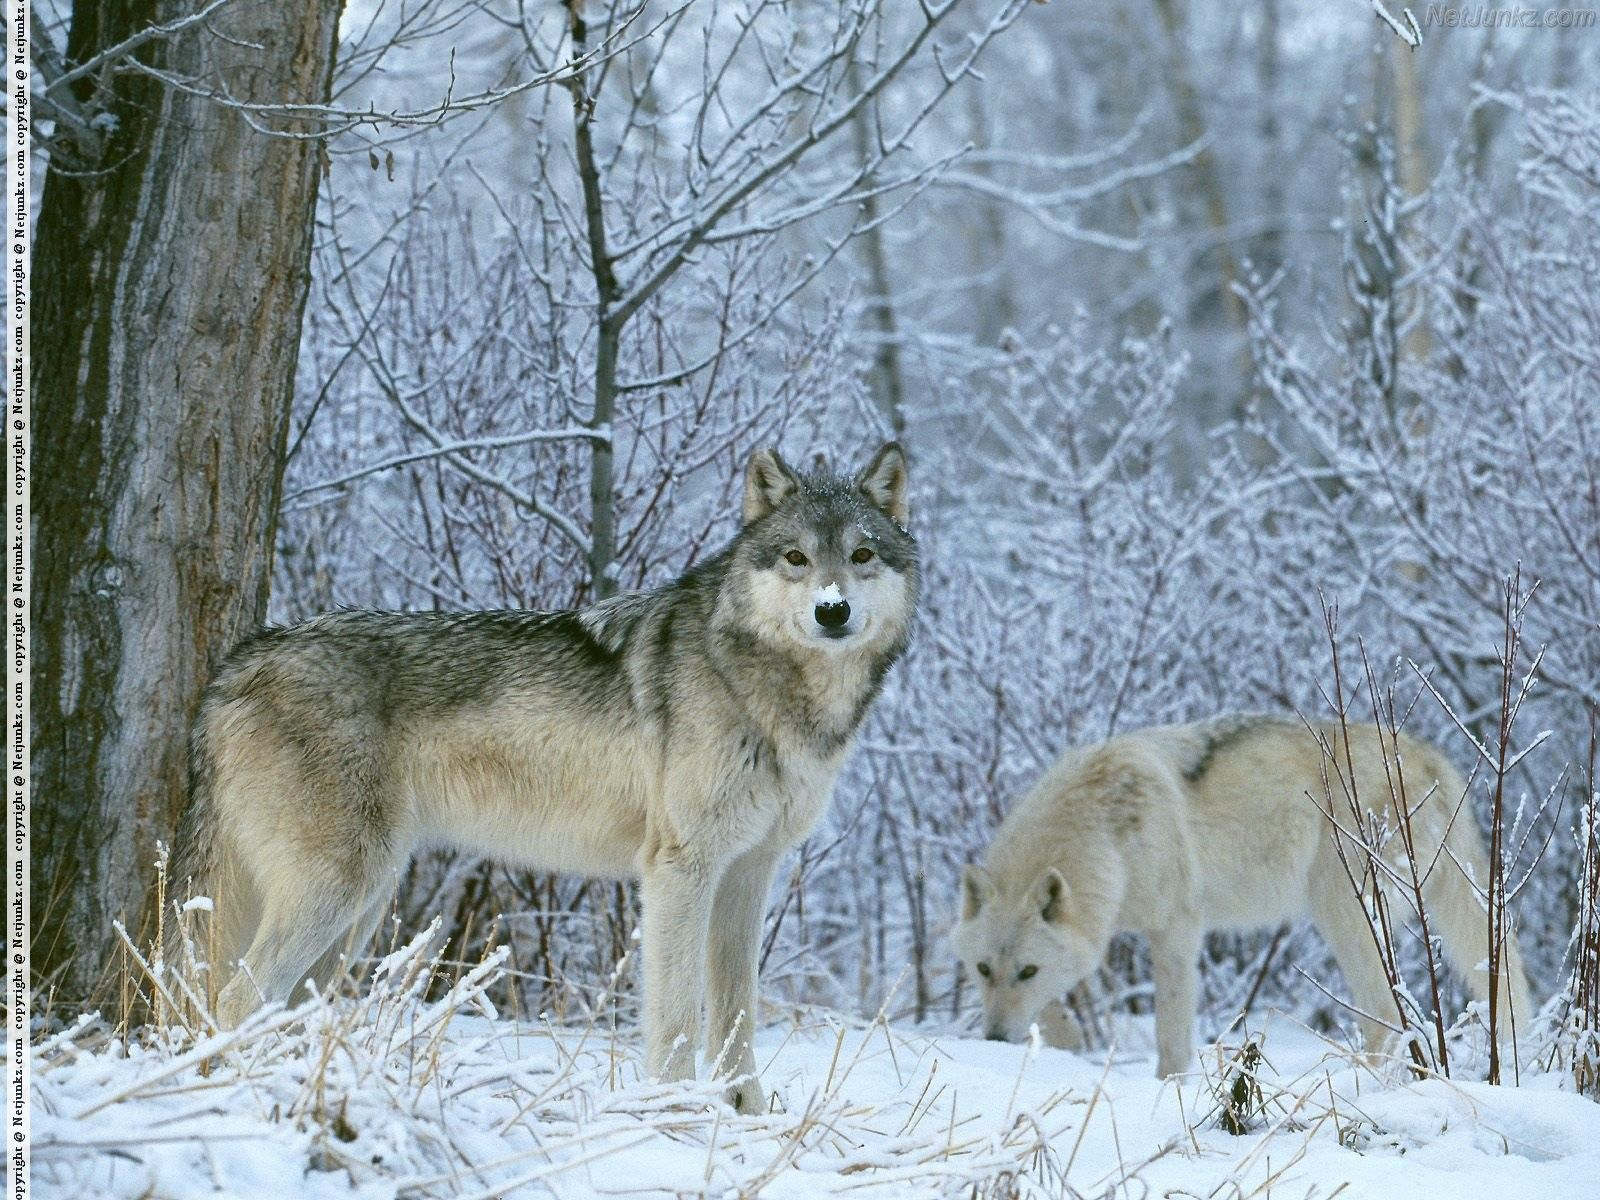 winter - wolves in the winter forest | Winter Wonderland | Pinterest ...